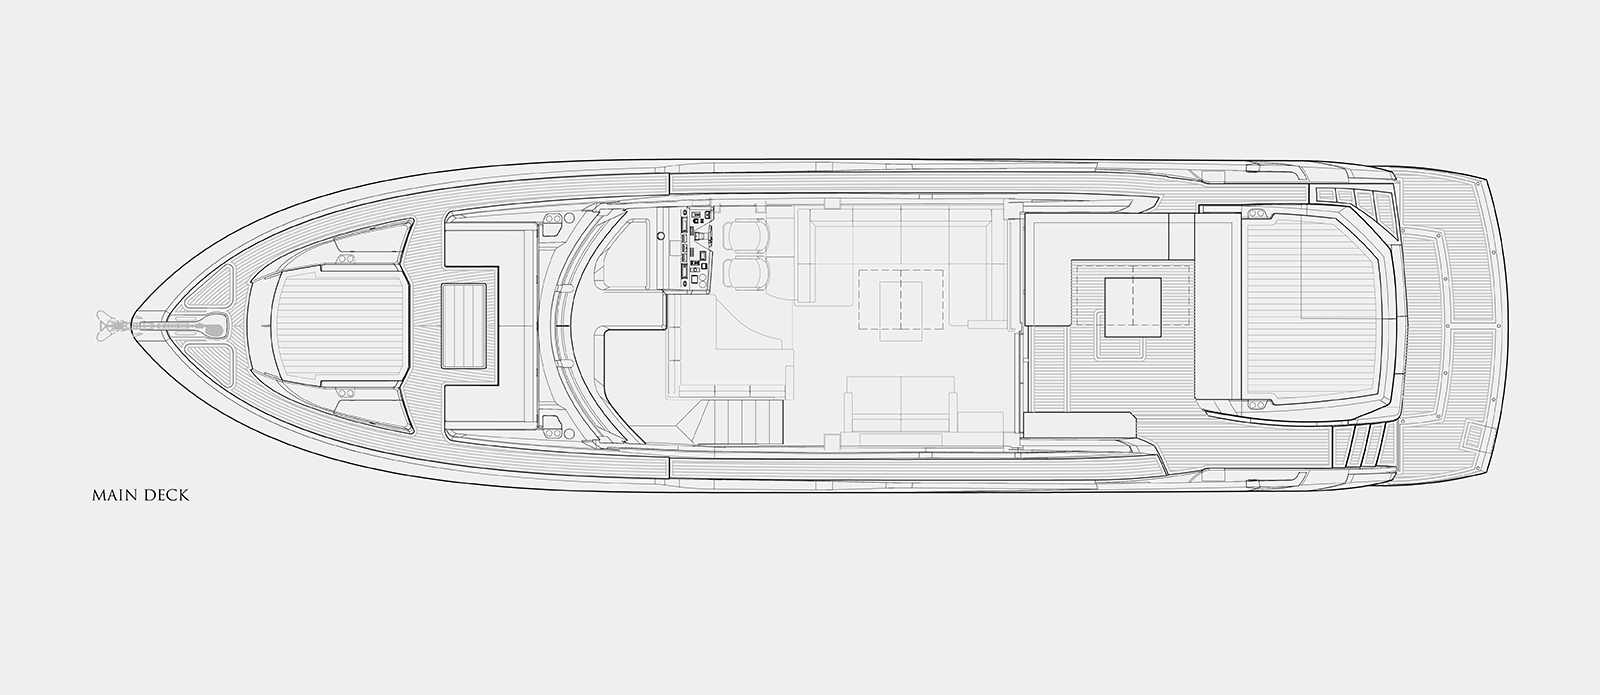 Sunseeker 74 Predator - Main Deck